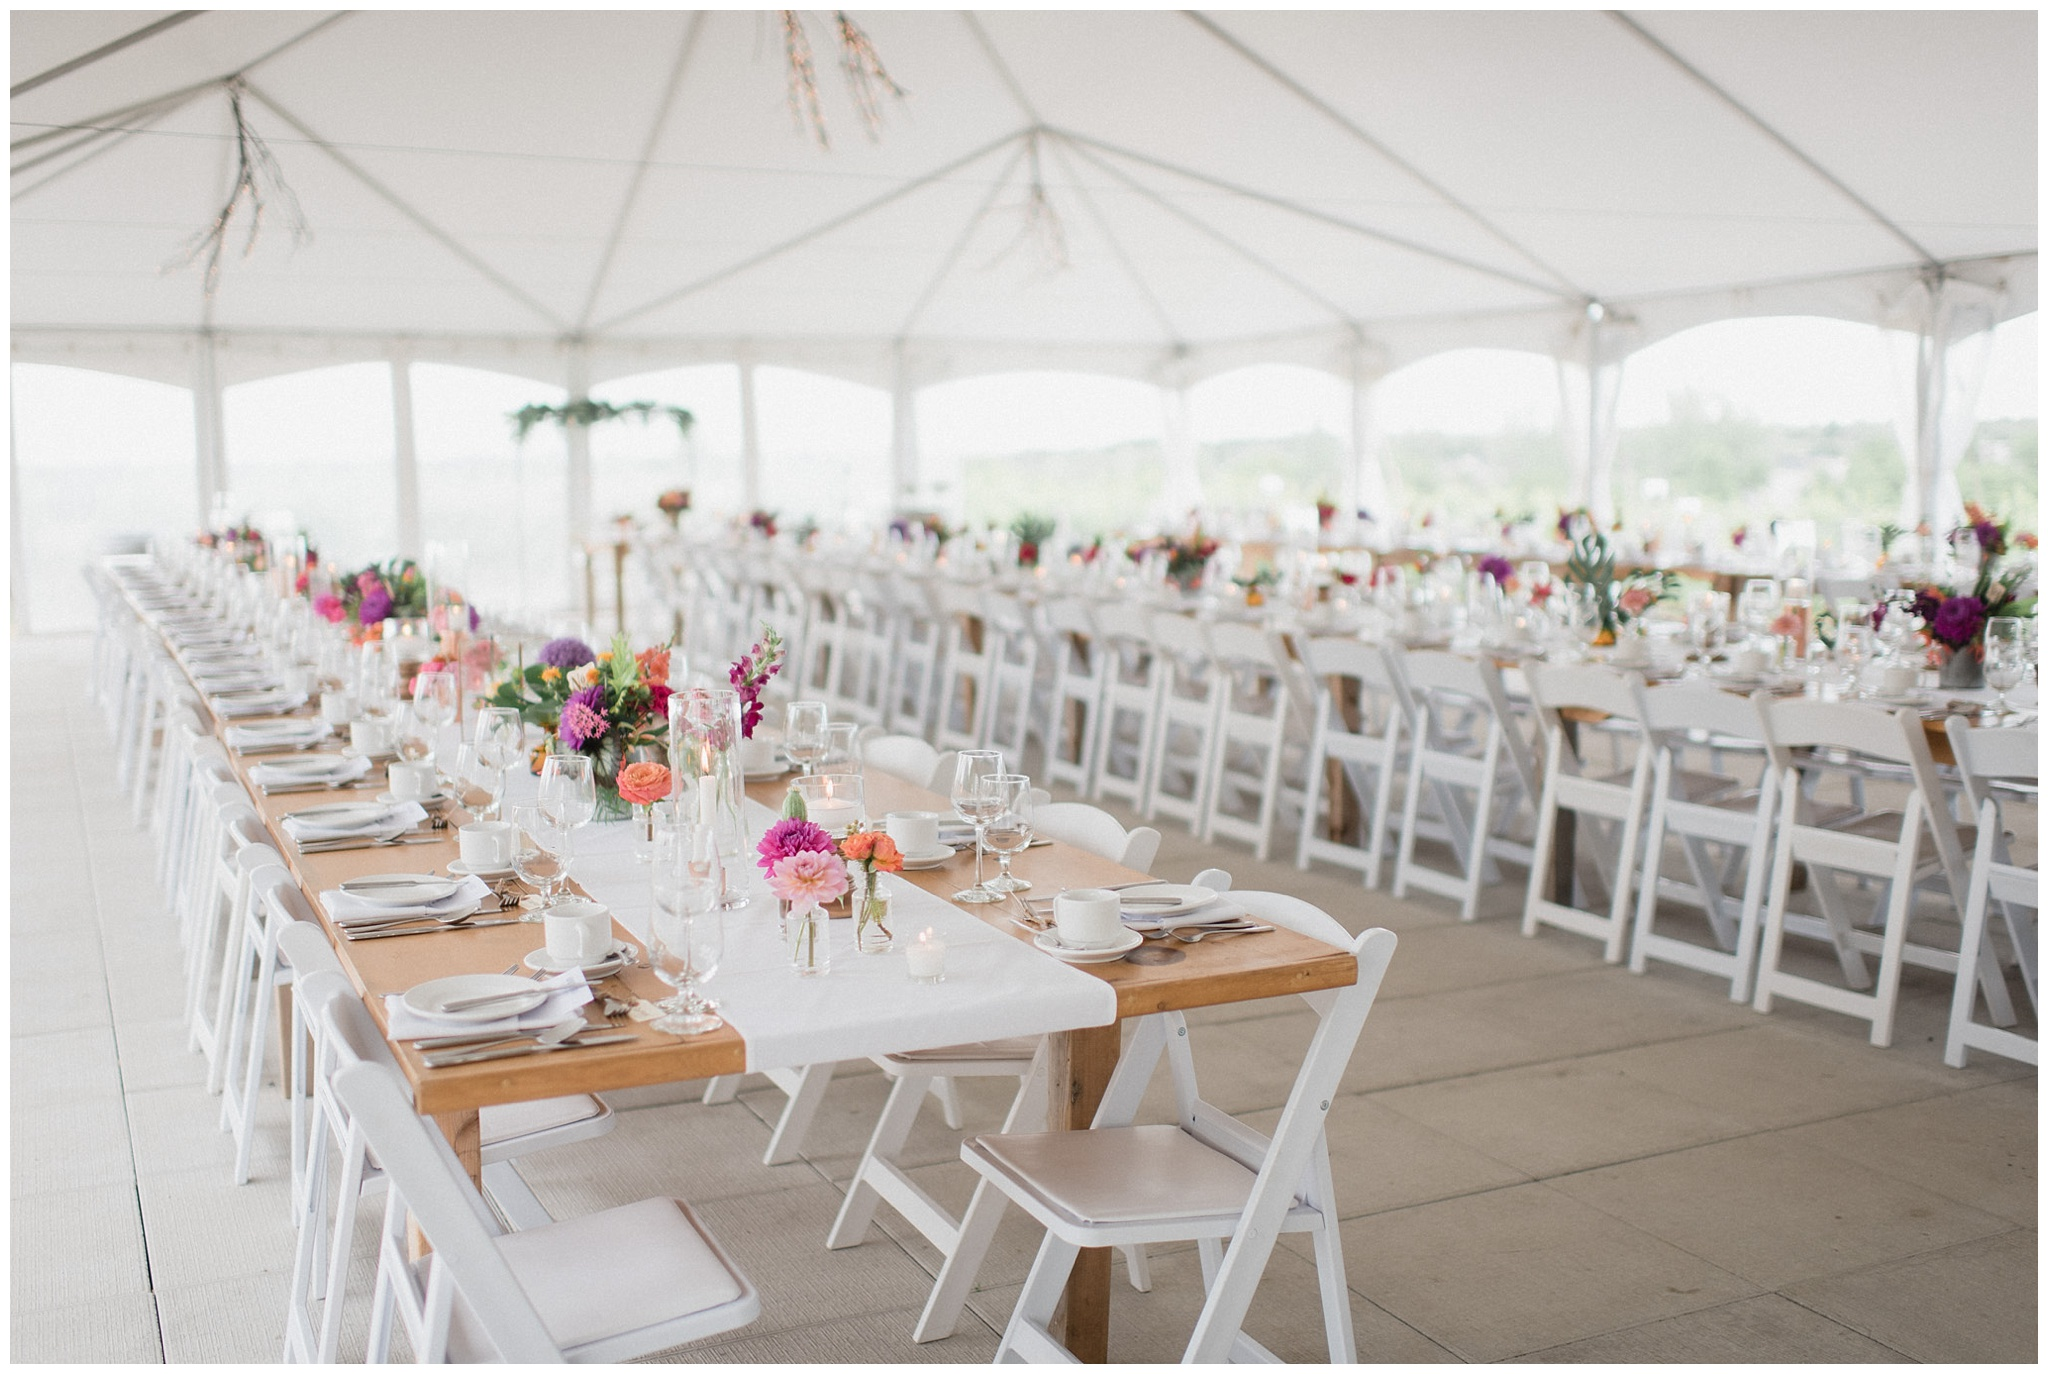 Colourful Ravine Vineyard Tent Wedding by Jenn Kavanagh Photography